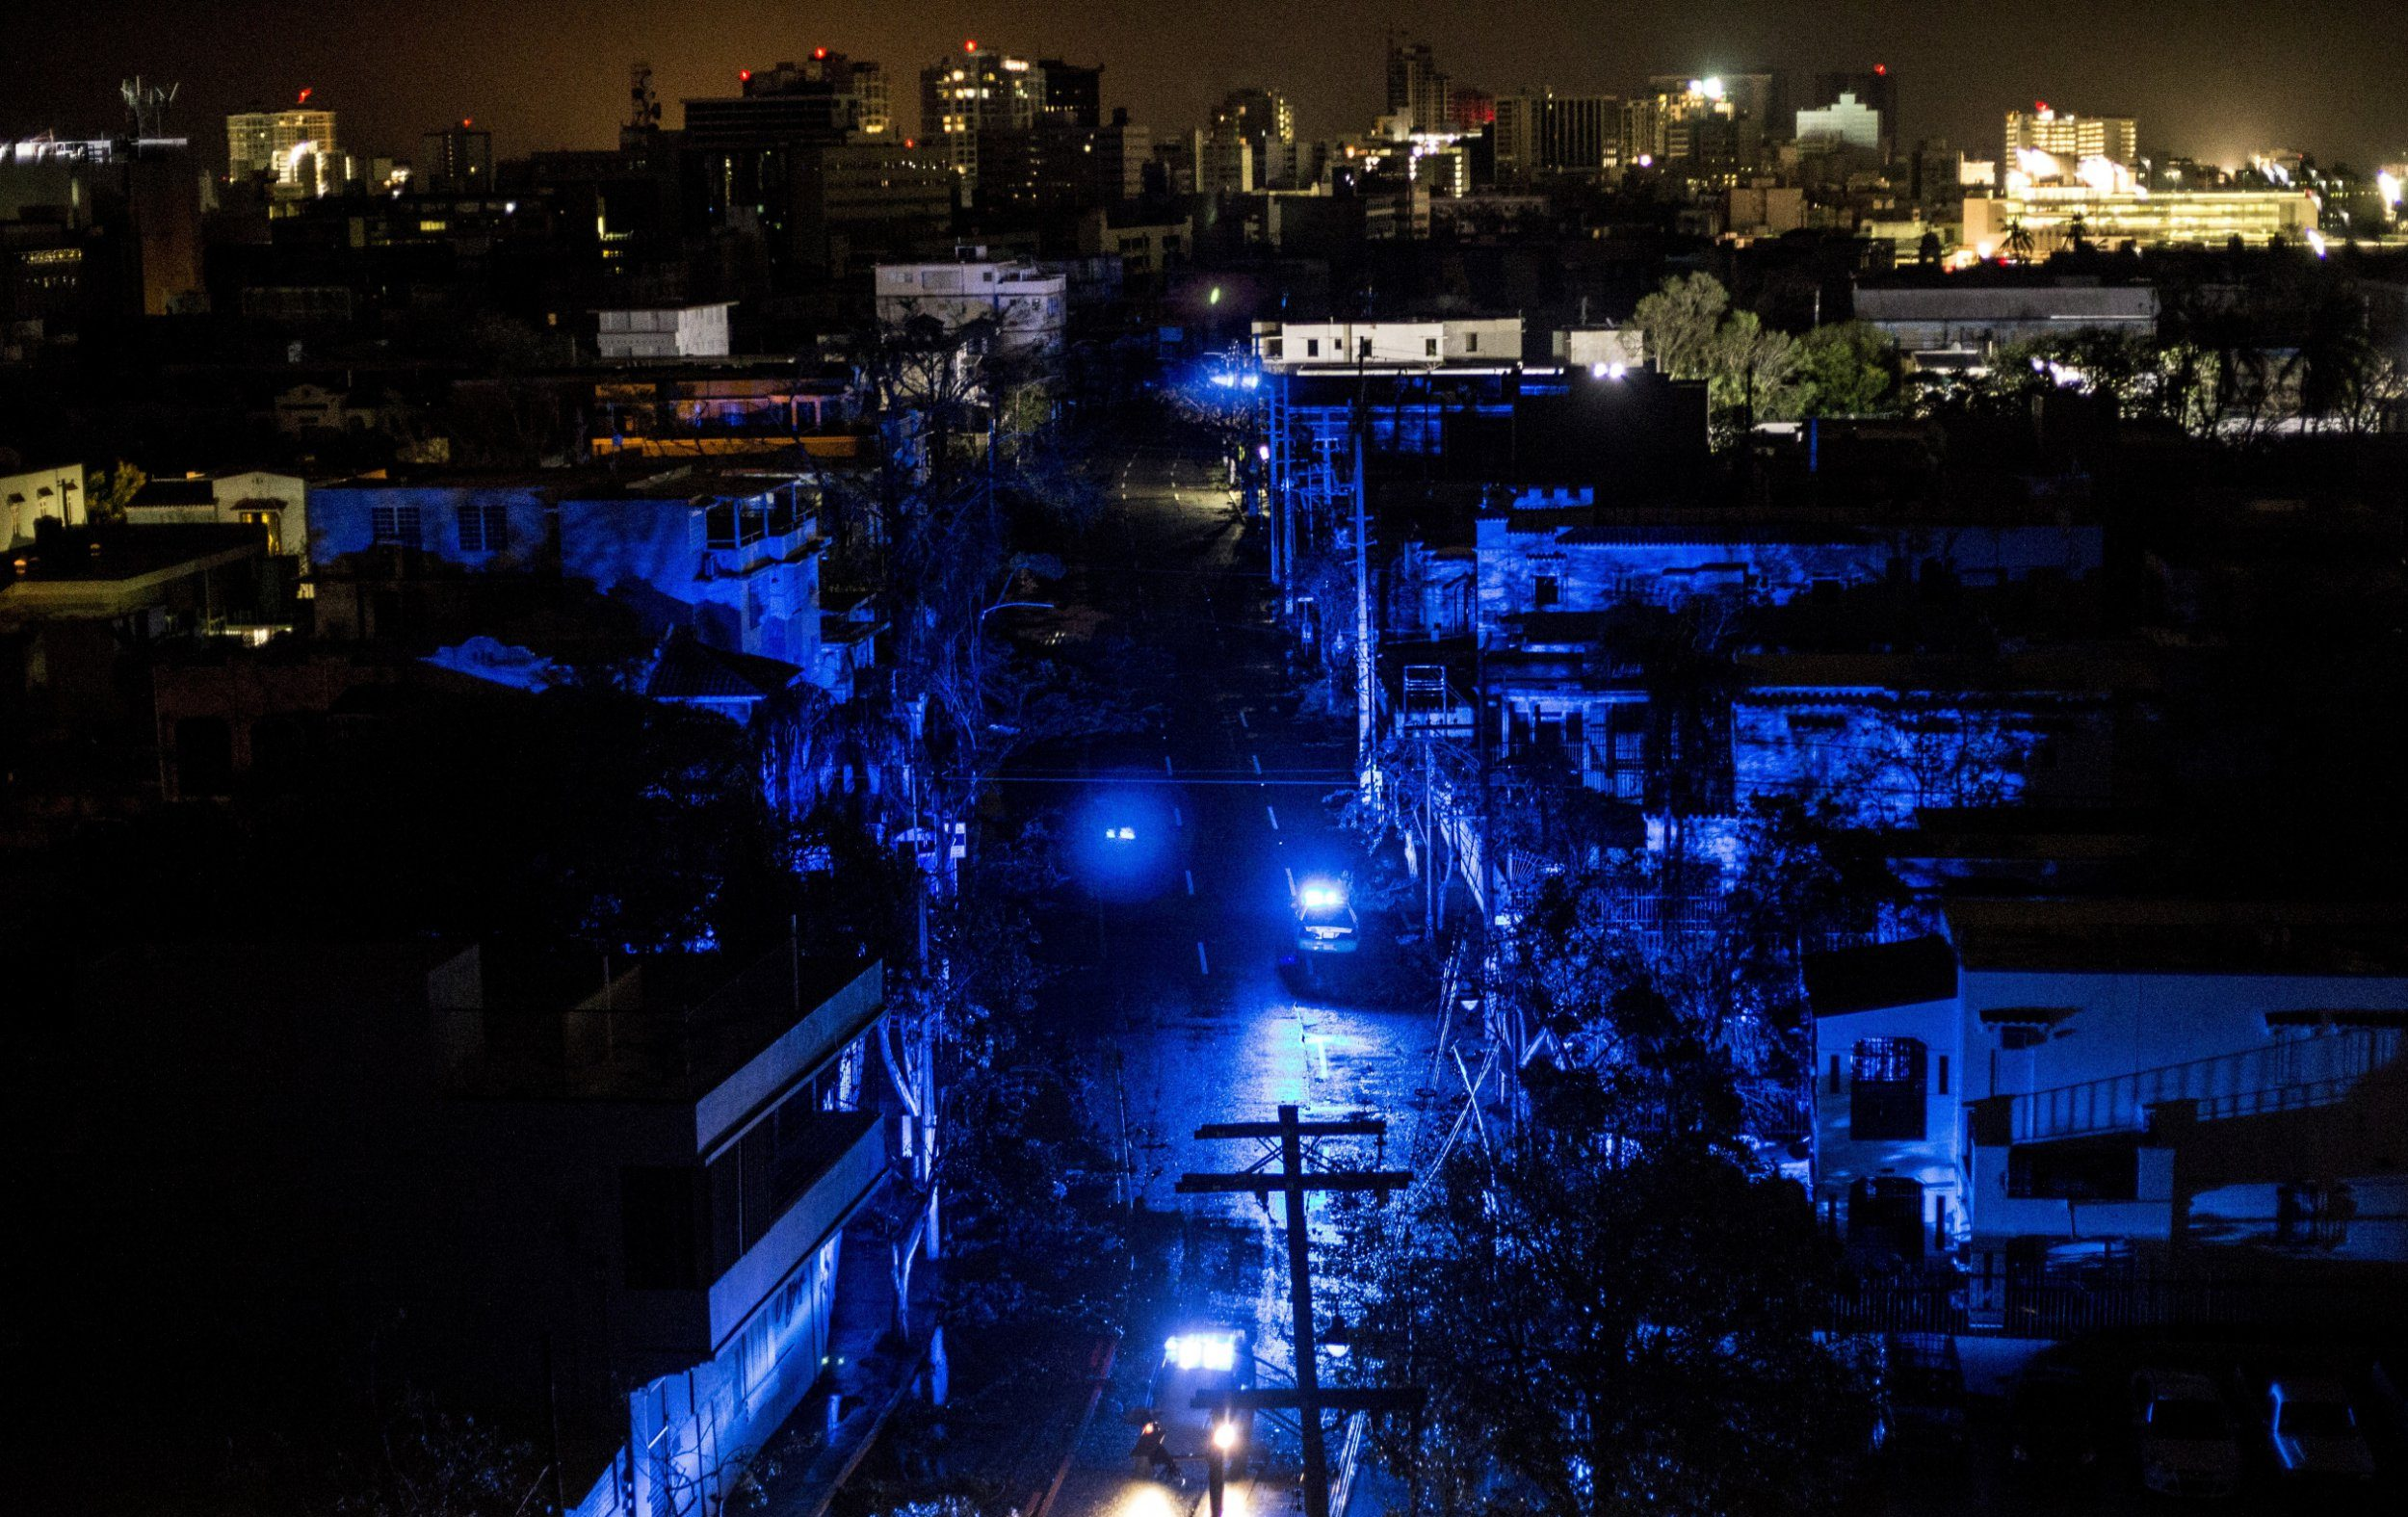 Hurricane Maria 'destroyed everything in its path' after hitting Puerto Rico in the dead of night